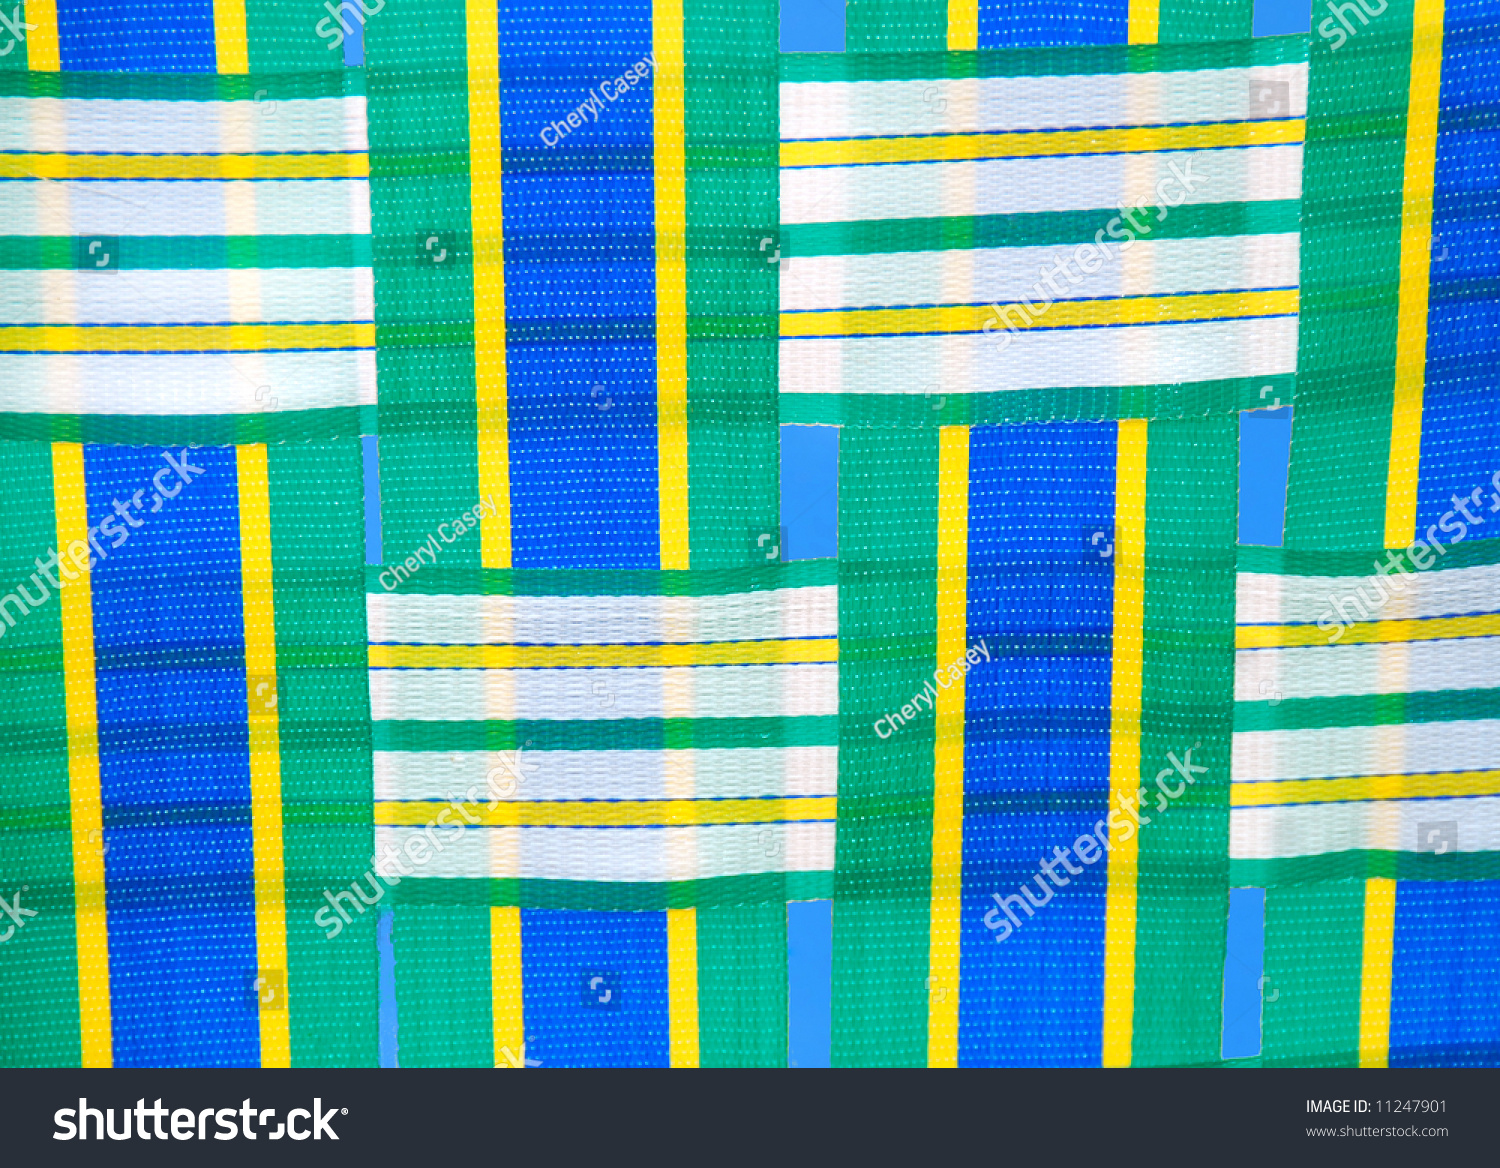 Woven Lawn Chair Old Fashioned Woven Lawn Chair Strapping Stock Photo Edit Now